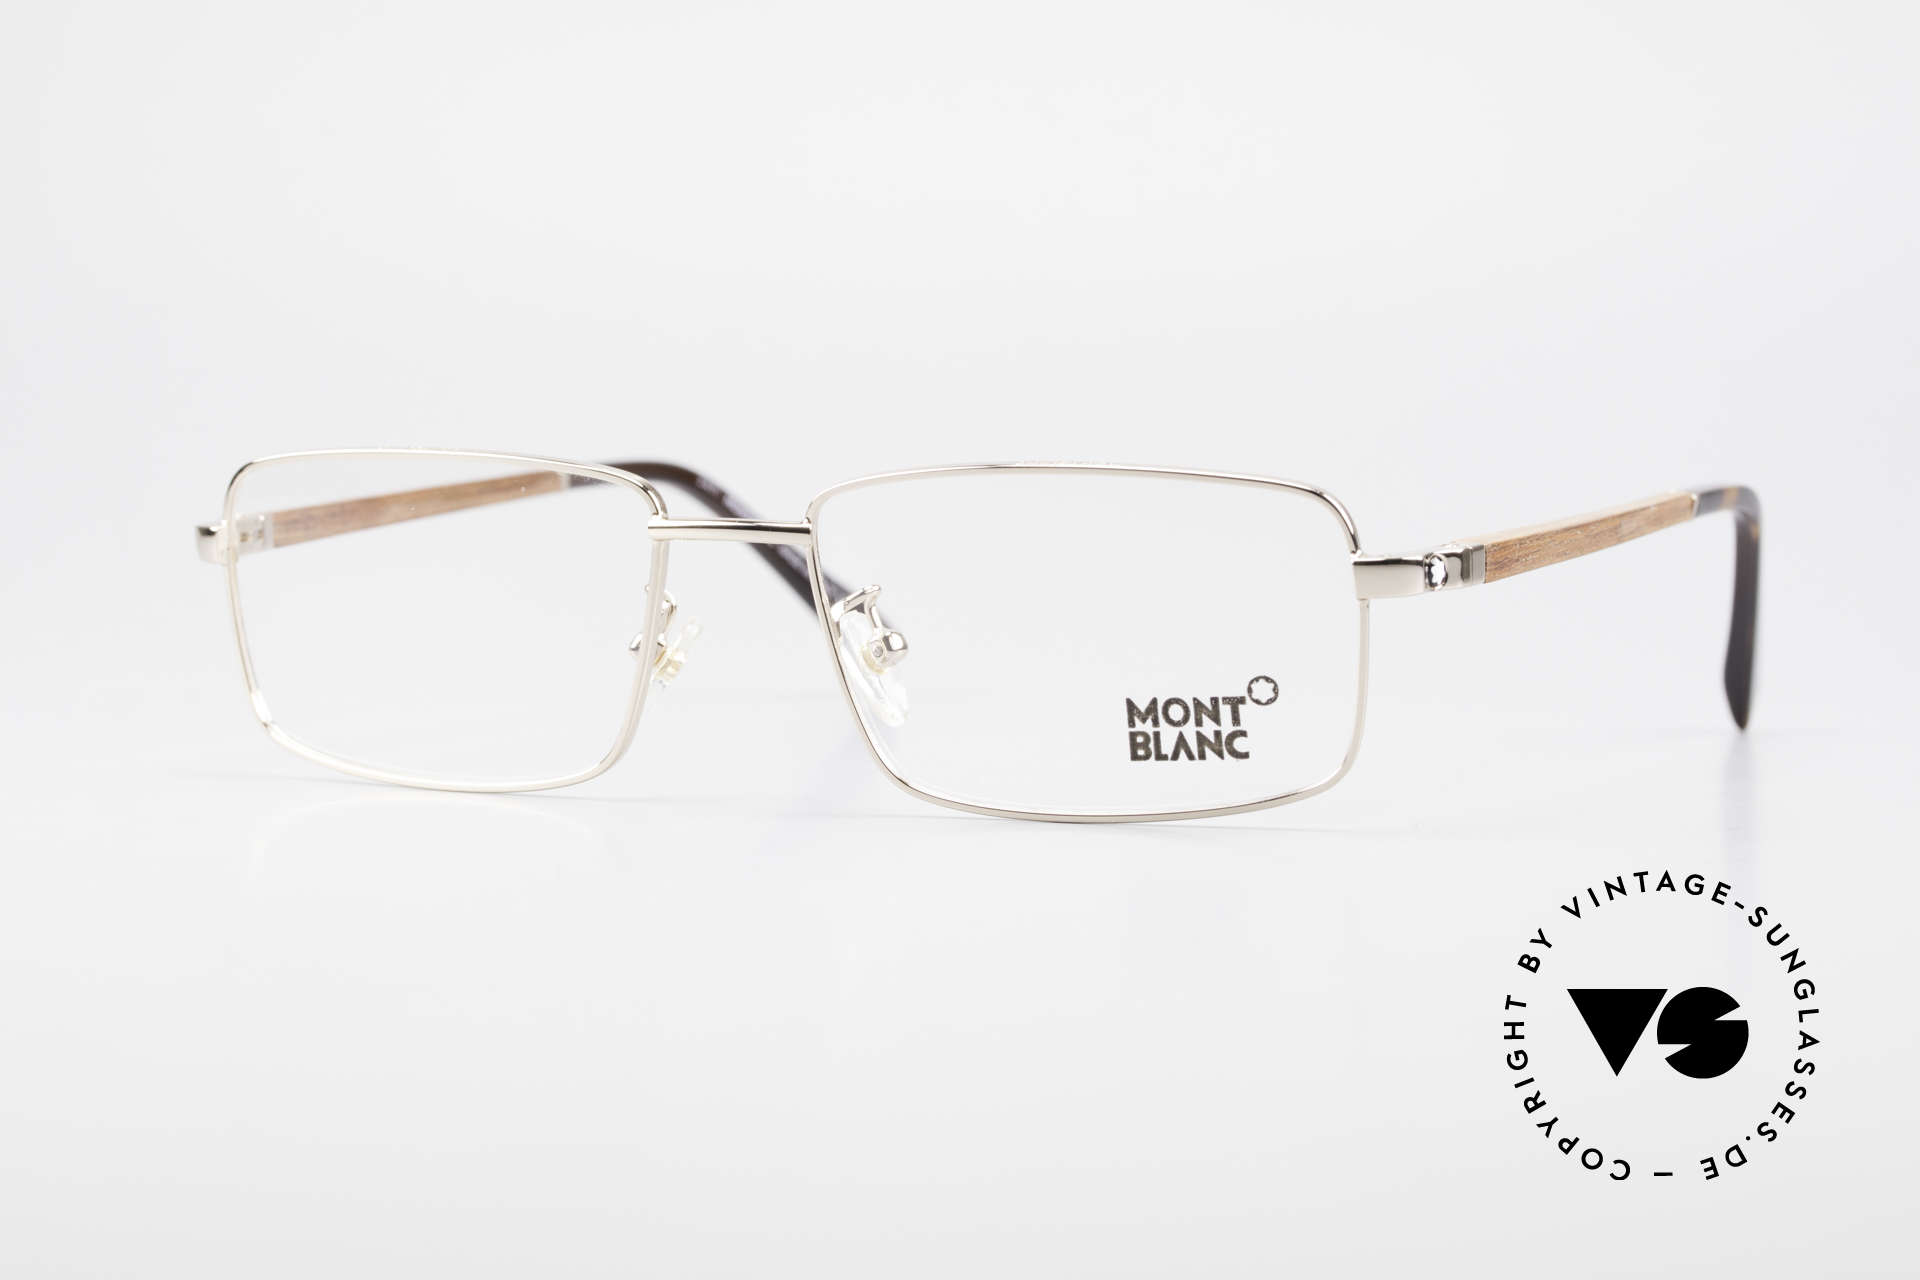 Montblanc MB389 Gold-Plated Wood Glasses Men, Mont Blanc wood glasses, 389, col. 028 in size 55/17, Made for Men